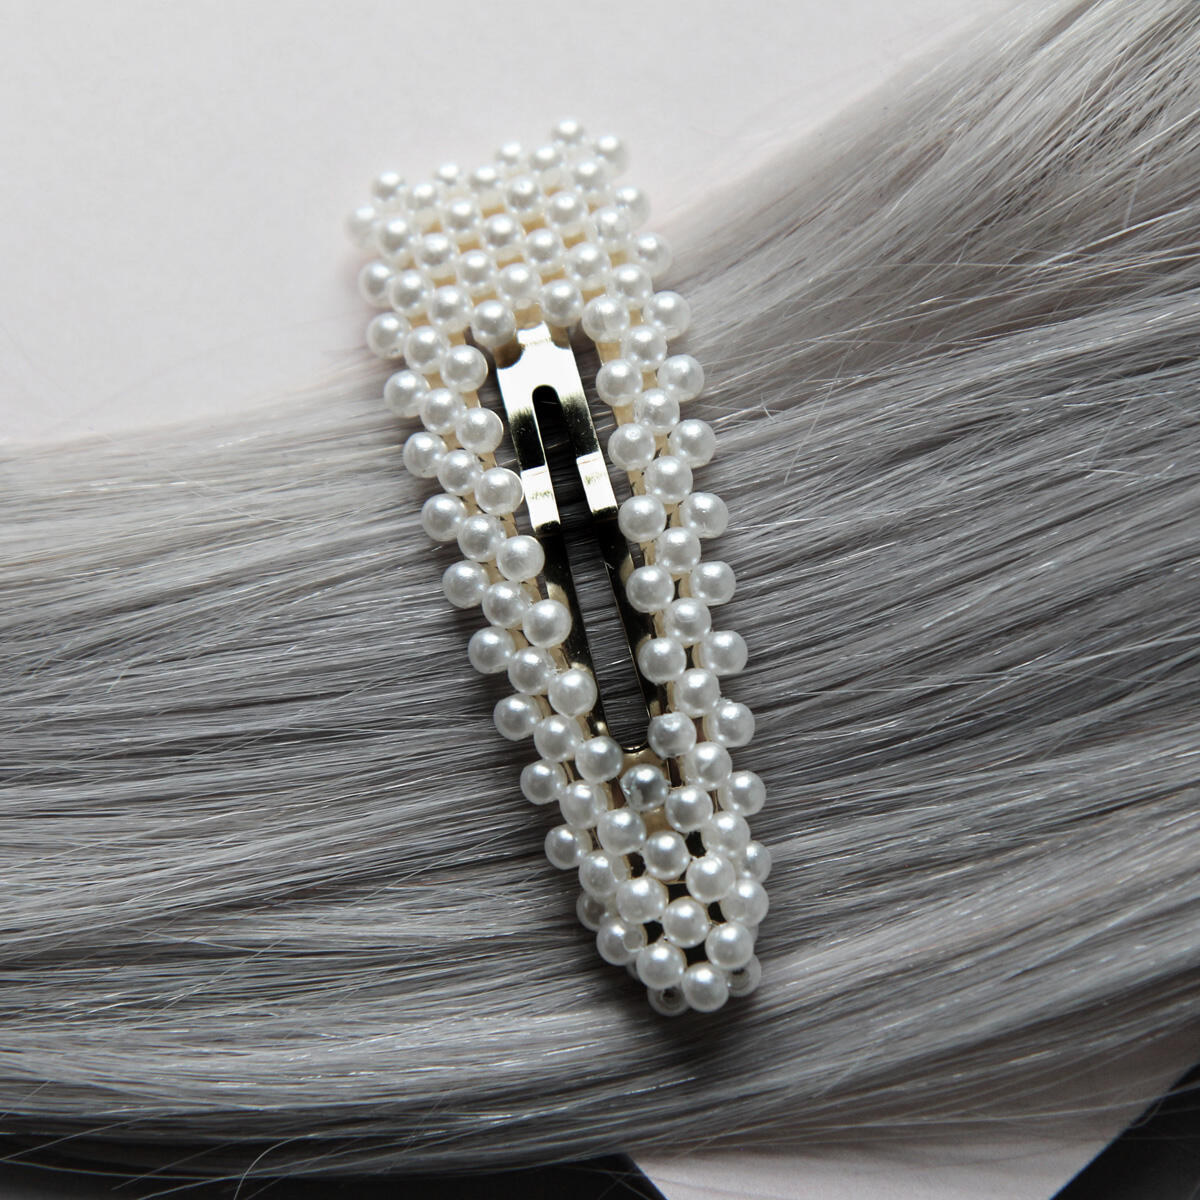 Hair slide with pearls Pearl Collection no. 14 null